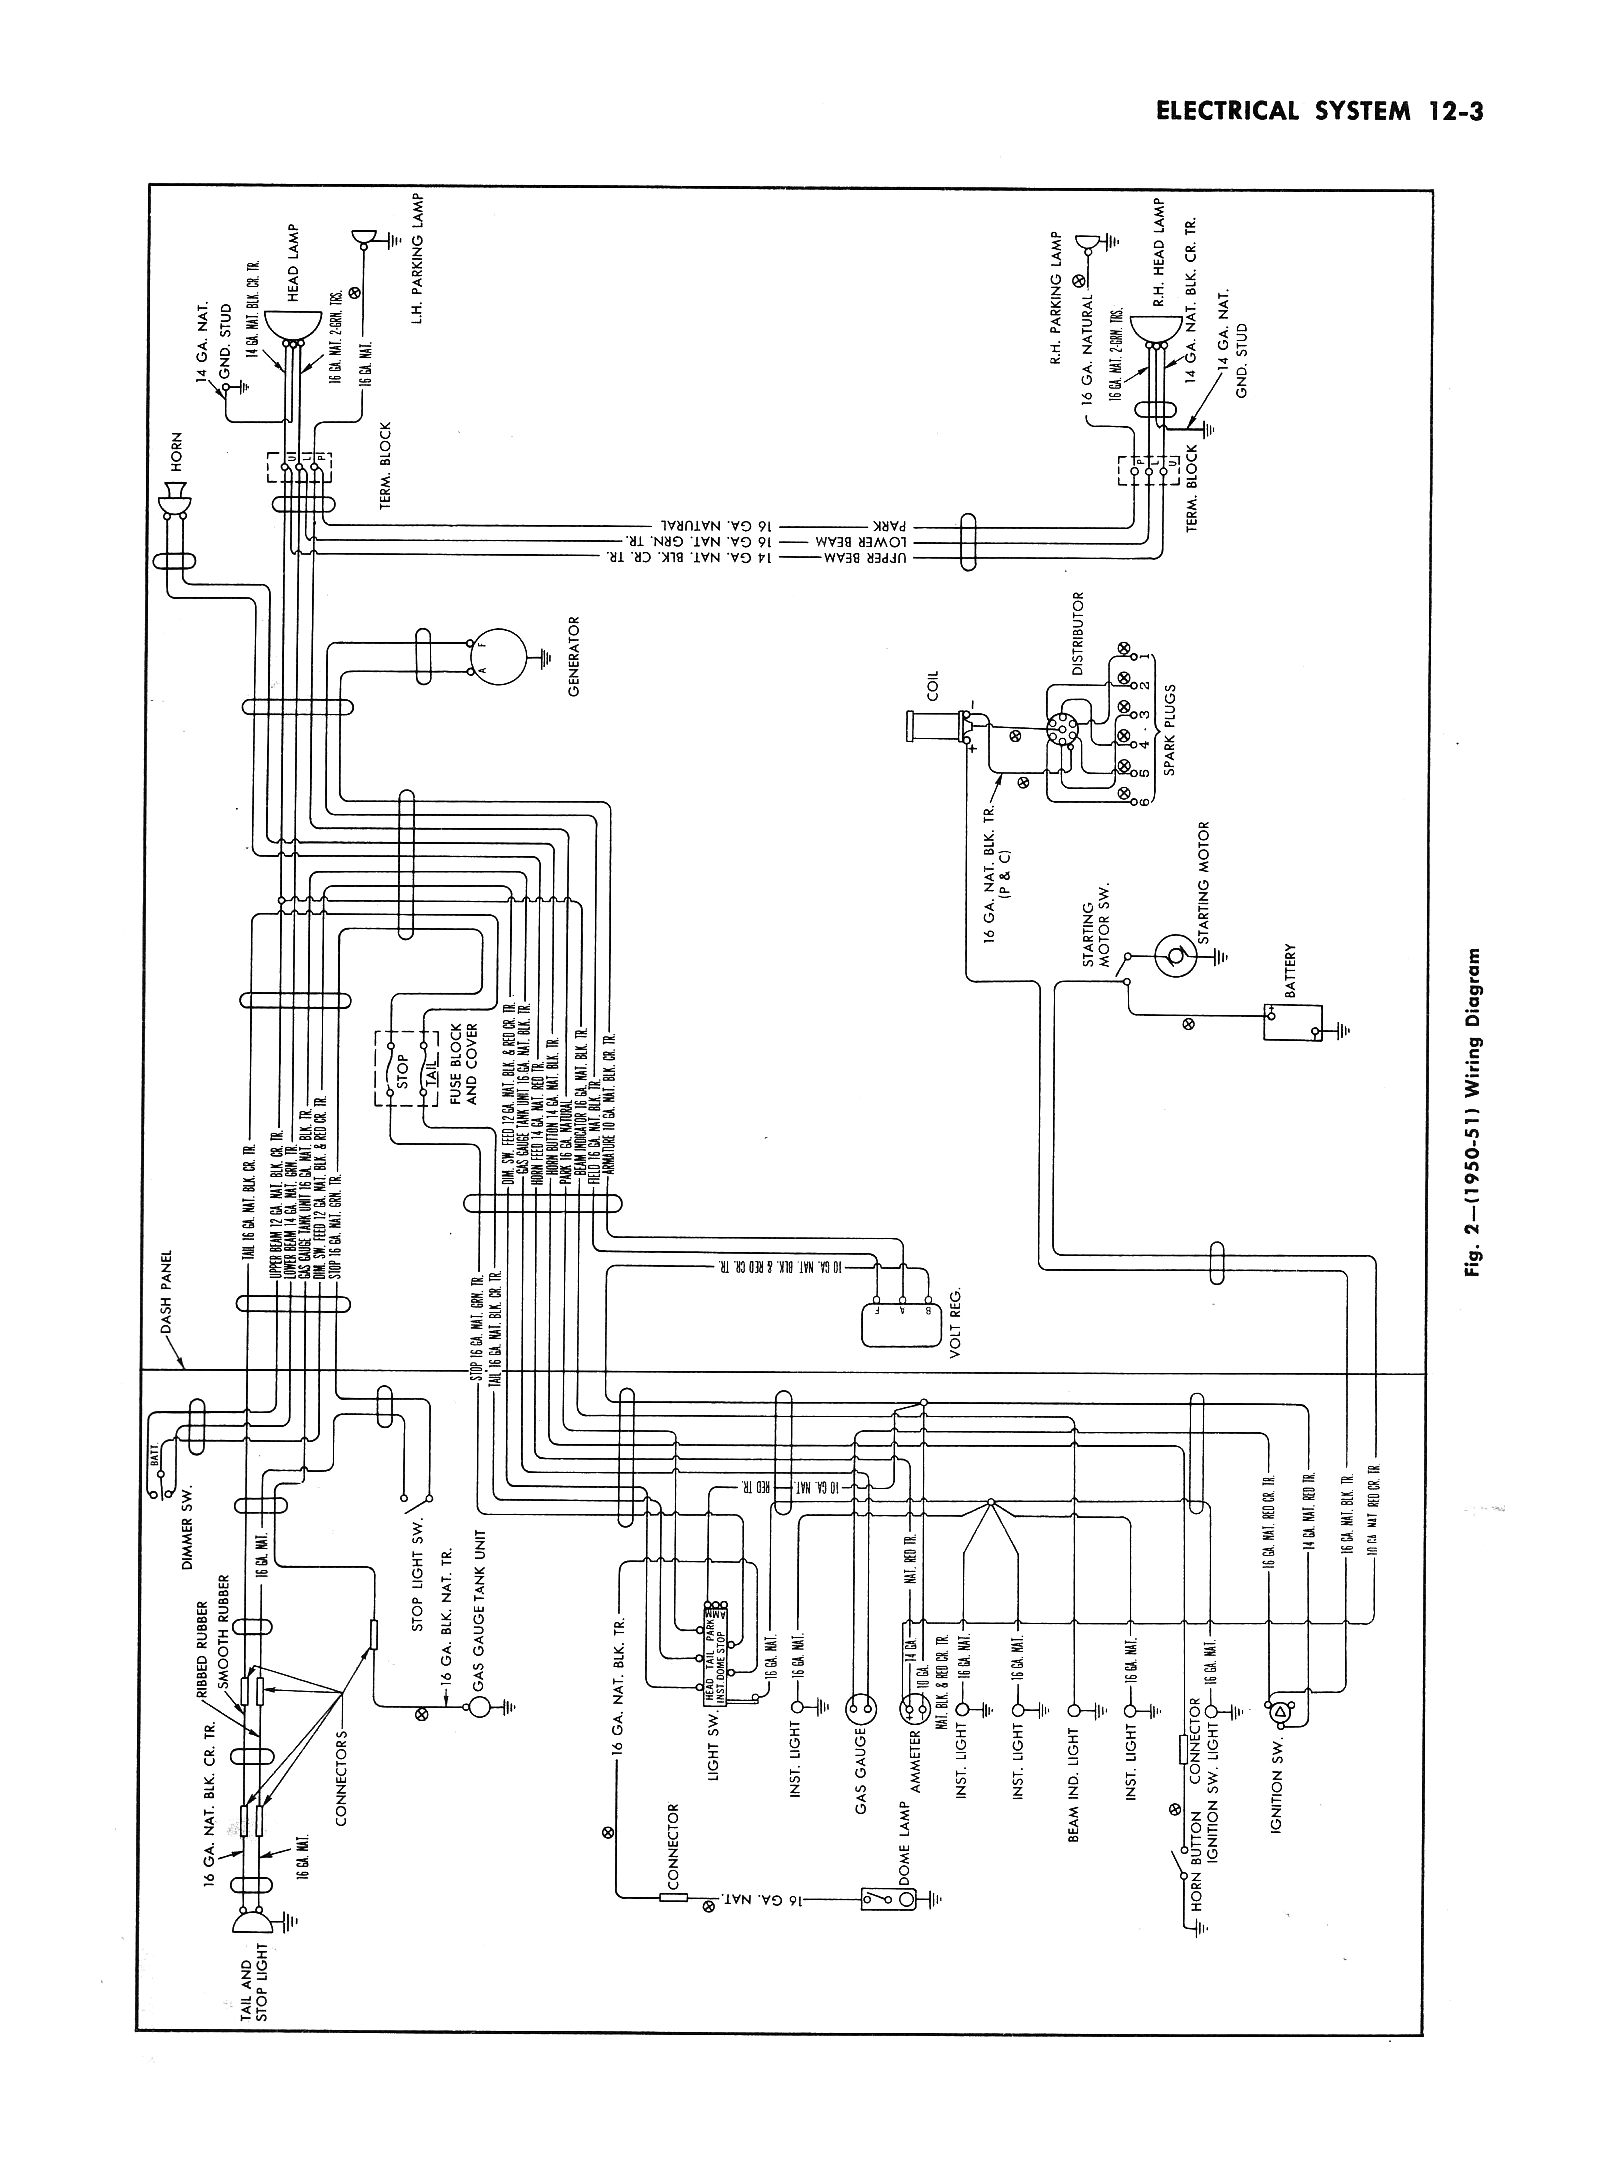 Chevy Wiring diagrams on chevrolet malibu wiring diagram, 1939 chevy wiring diagram, 1941 oldsmobile wiring diagram, 1941 ford speedometer, 1941 nash wiring diagram, 1941 ford distributor, 1949 cadillac wiring diagram, chevrolet impala wiring diagram, 1941 ford rear suspension, 1941 ford water pump, 1941 ford continental kit, 1941 ford steering, 1941 jeep wiring diagram, 1941 ford ignition switch, 1927 buick wiring diagram, 1941 ford defroster, 1938 chevy wiring diagram, 1941 ford coupe, 1941 ford exhaust, 1941 ford motor,